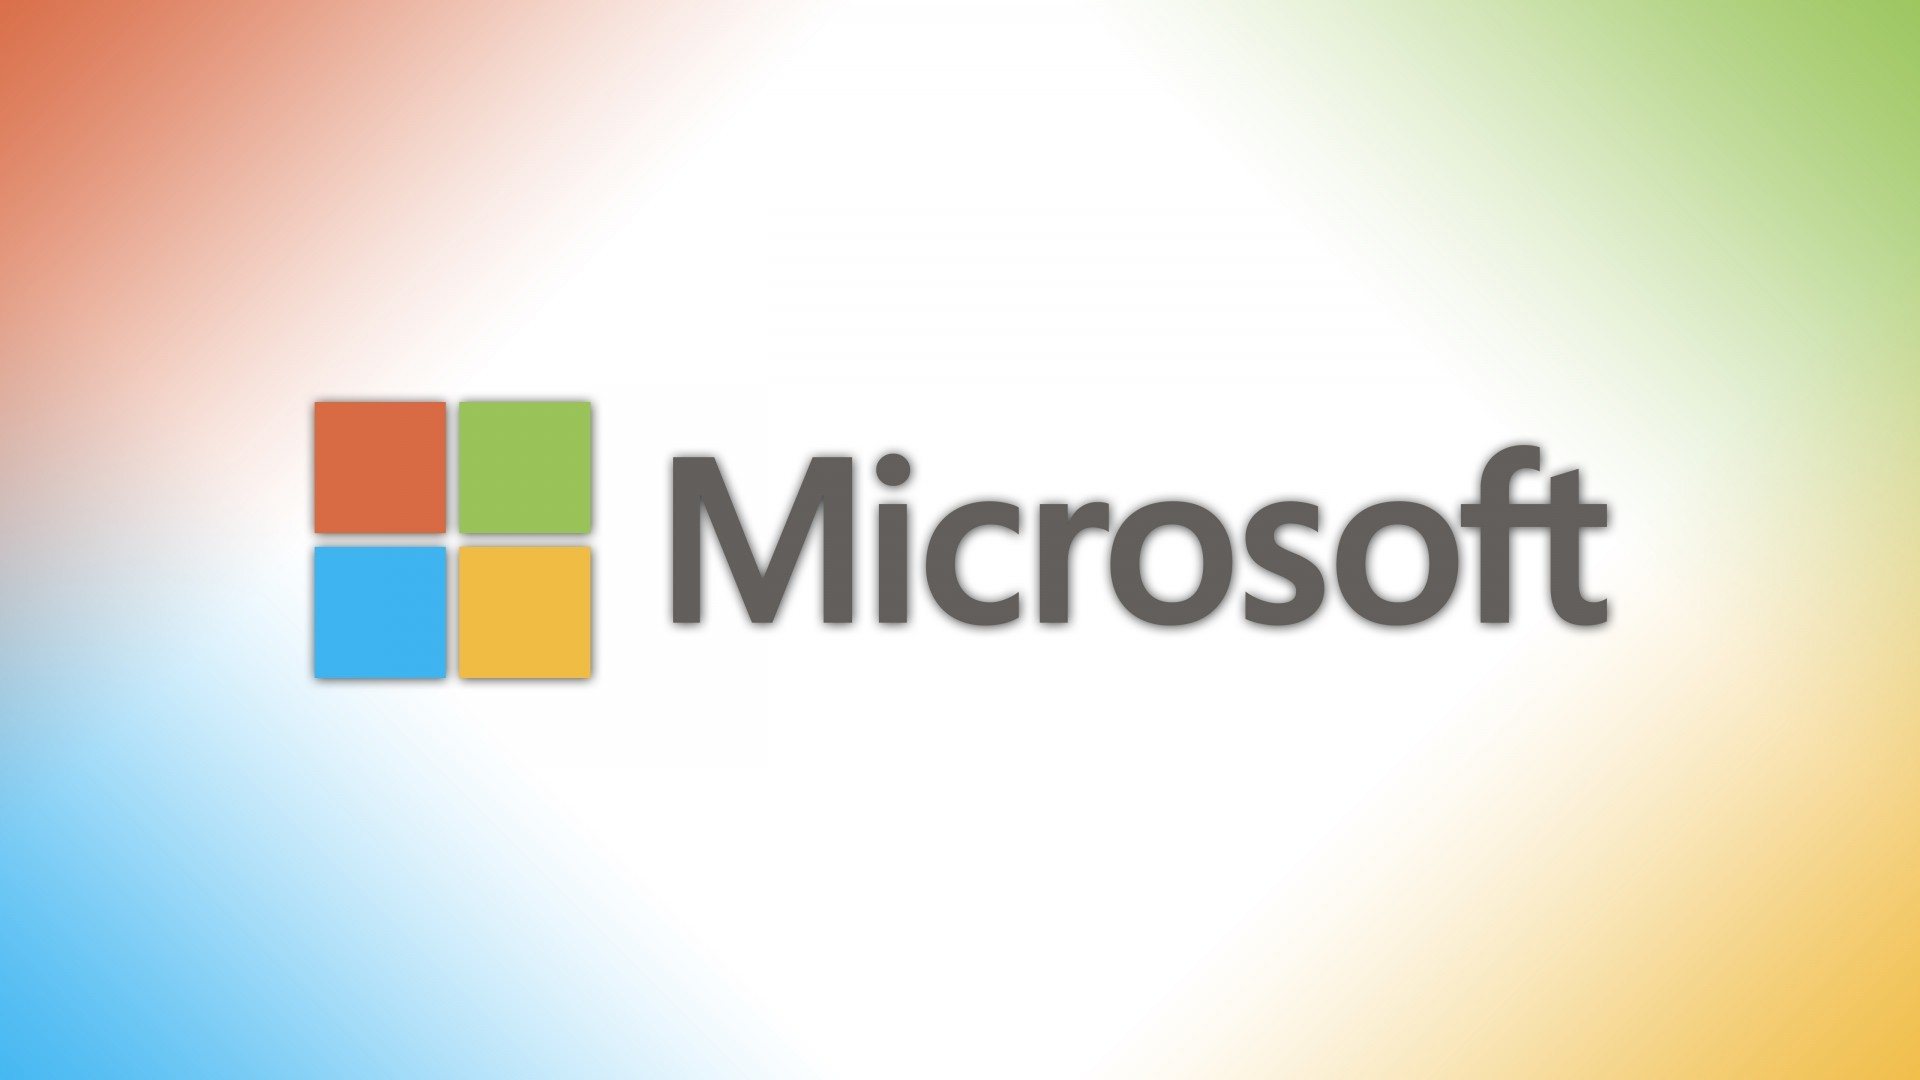 Microsoft 365 Launched By Microsoft